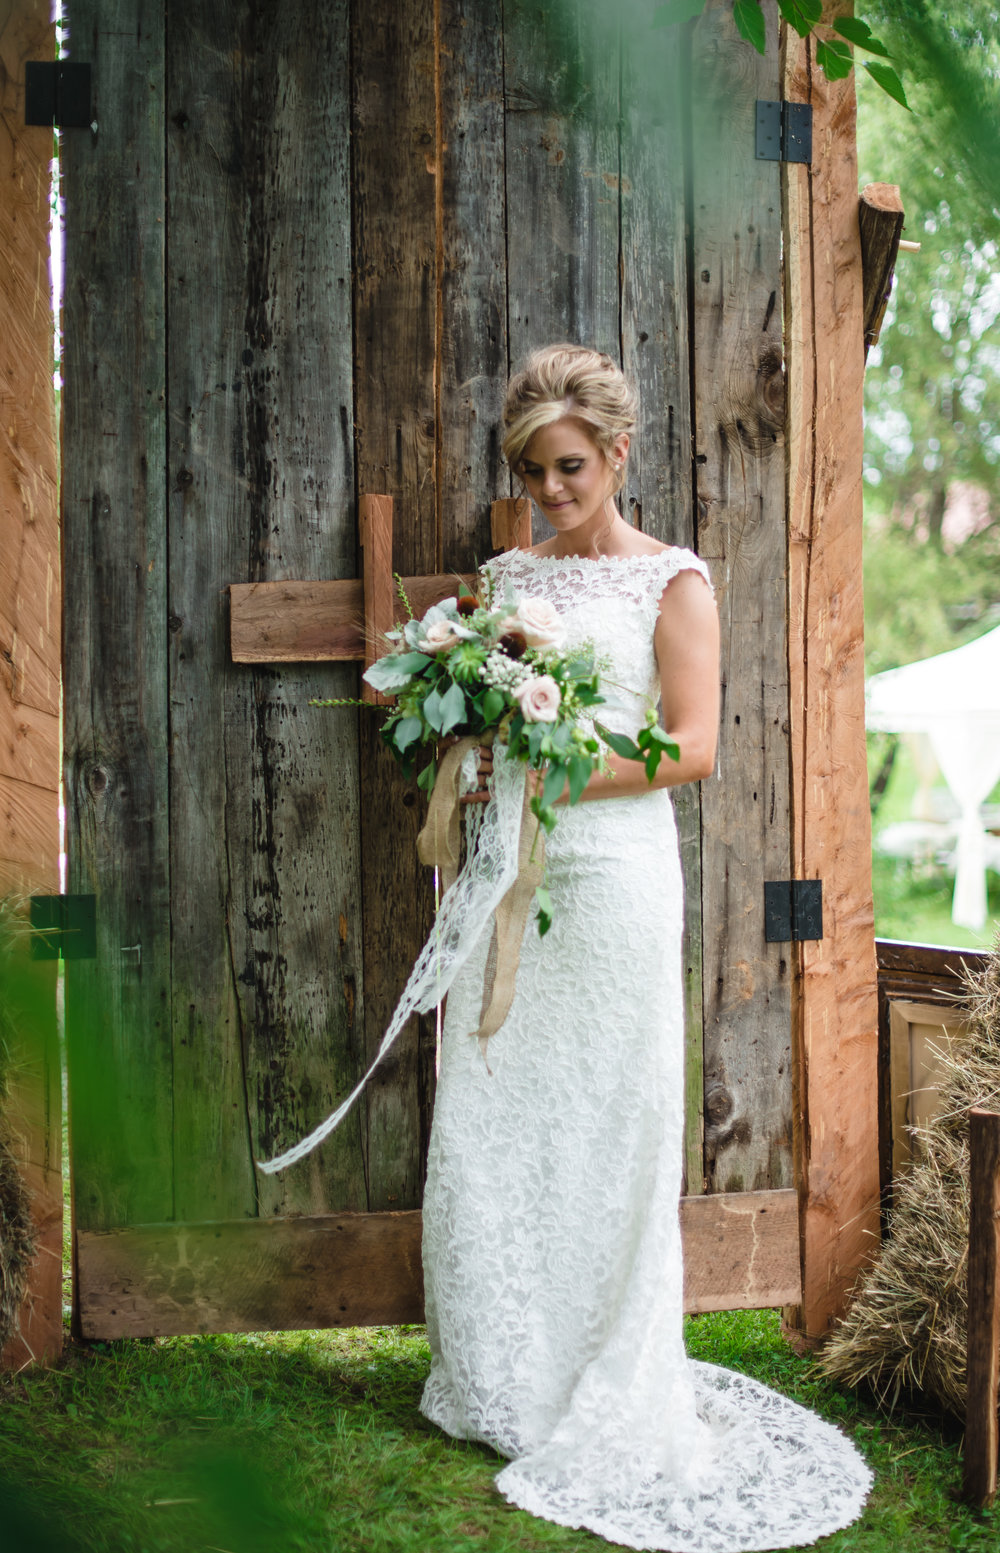 echo-hollow-farm-virginia-wedding.jpg